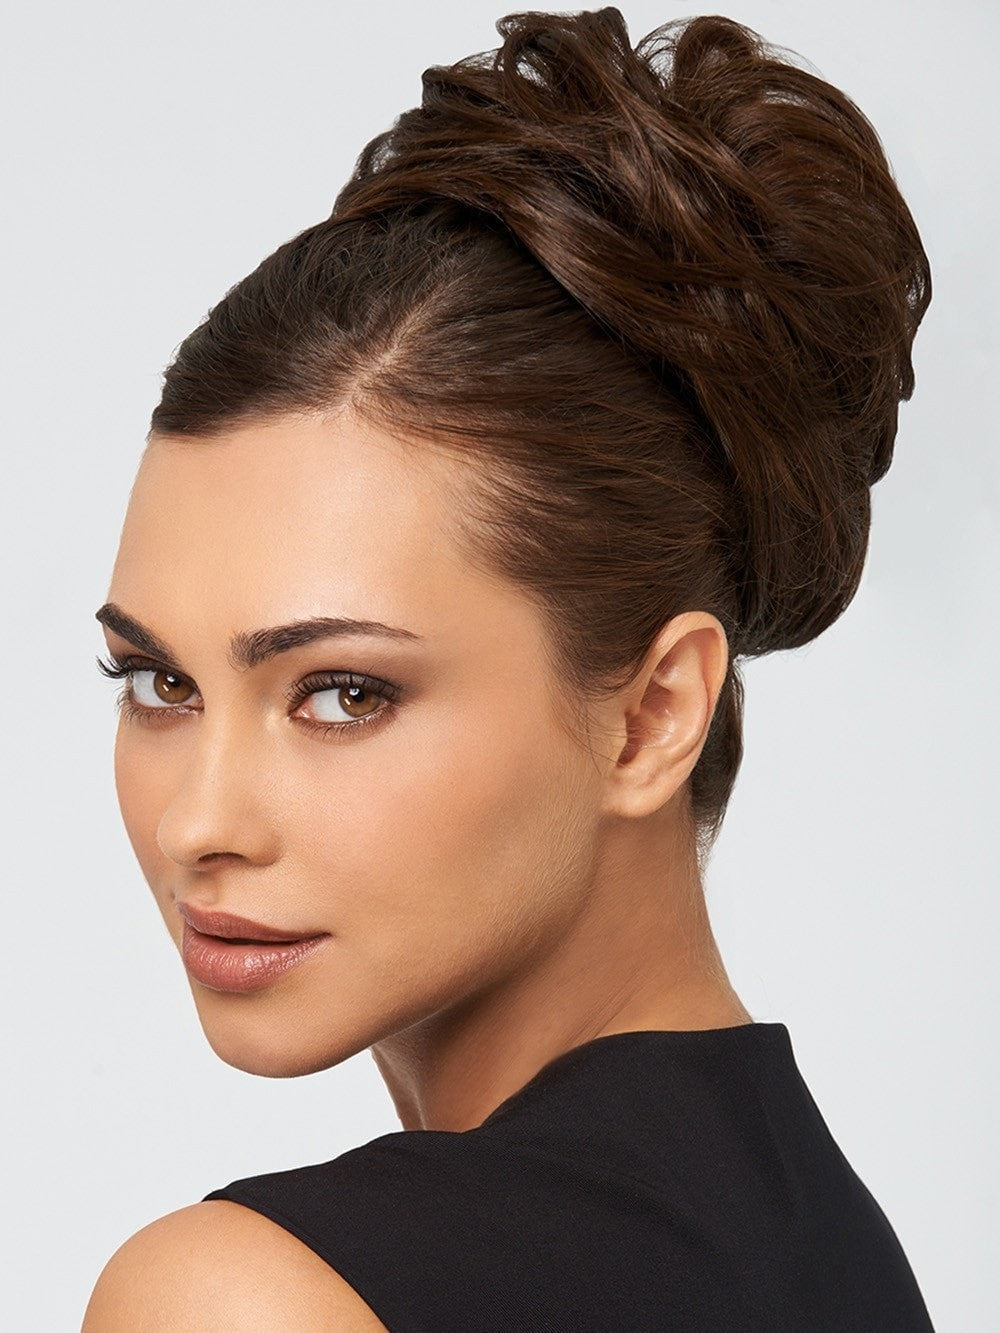 How to chestnut a style bun new photo